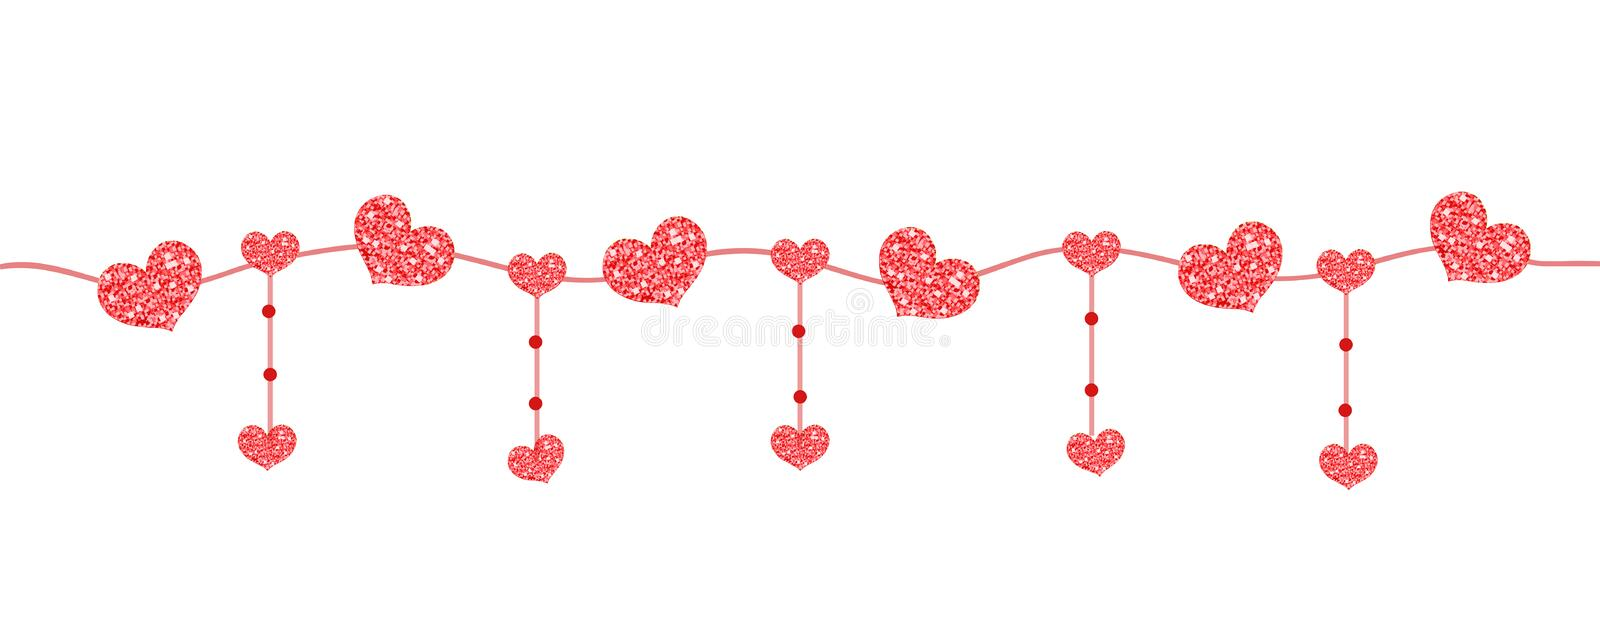 Happy Valentine`s day banner with hearts made of glitter. Brilliant horizontal borders. Romantic shining sparkling. Garlands, bunting. Vector illustration vector illustration